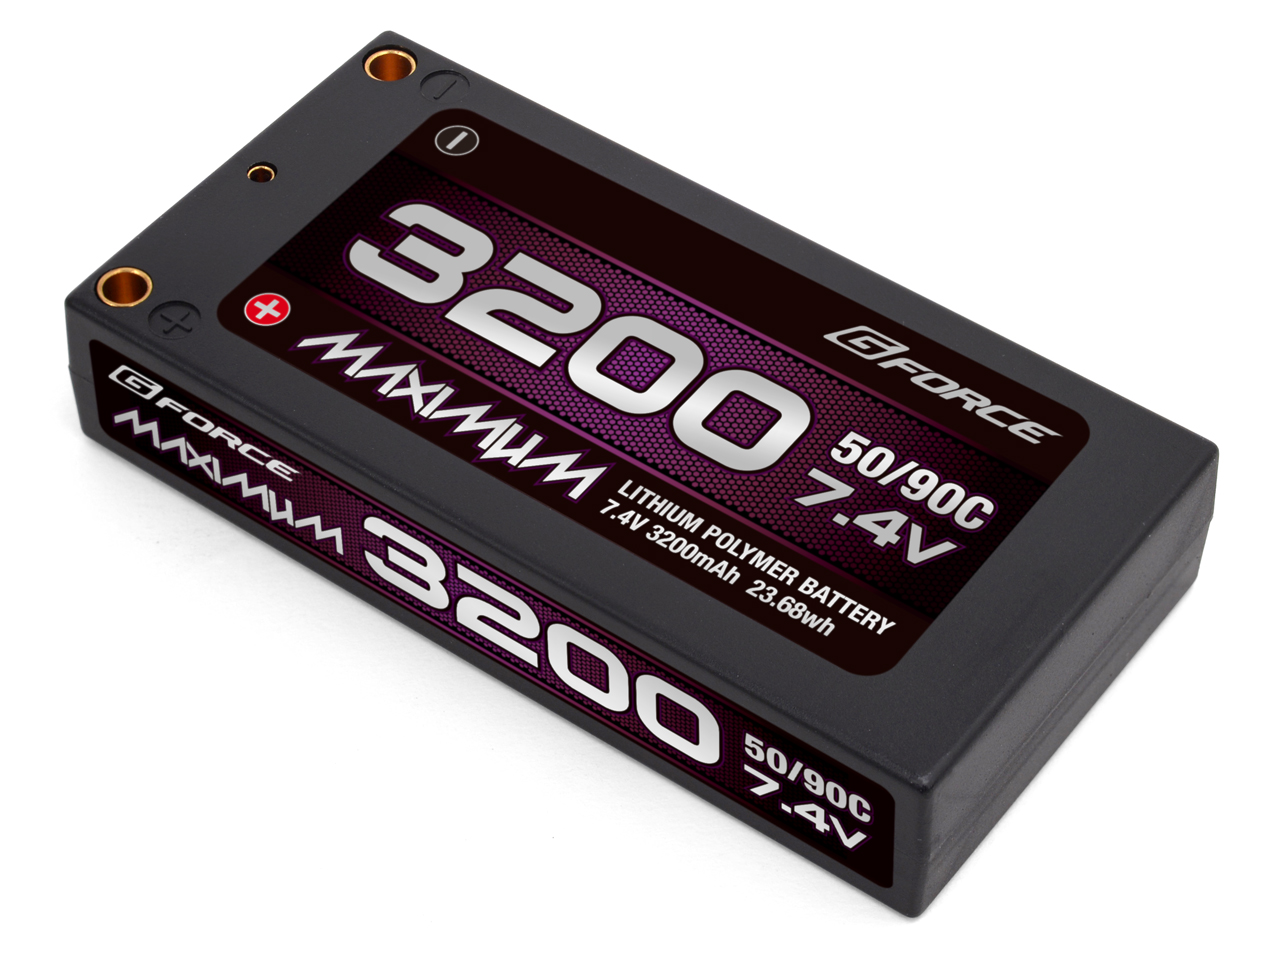 G-FORCE GFG010 Maximum LiPo 7.4V 3200mAh